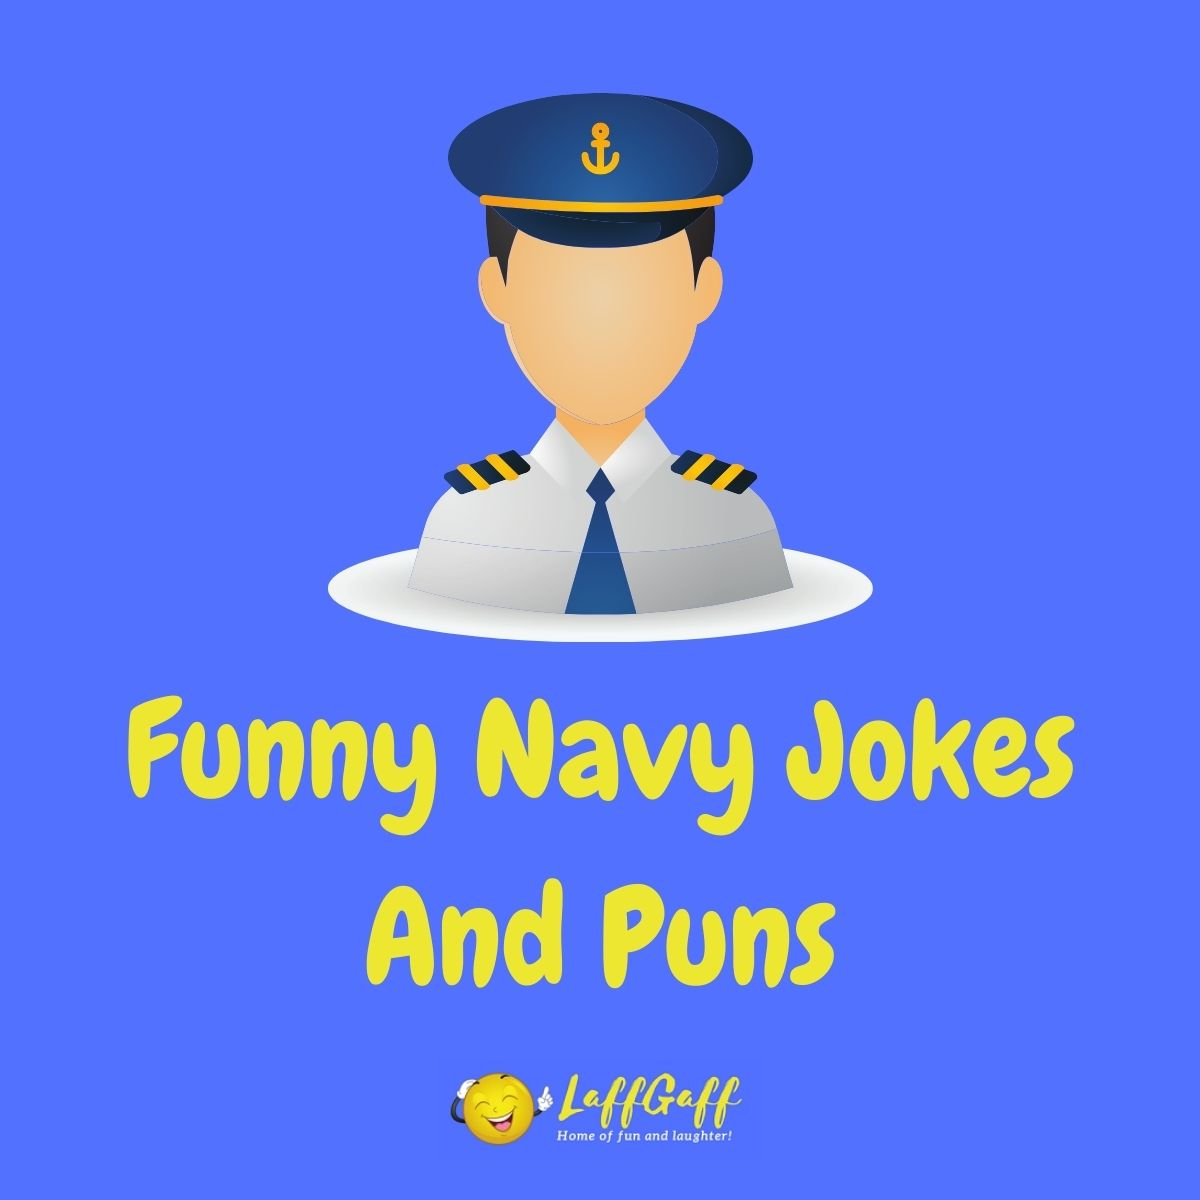 Featured image for a page of funny navy jokes and puns.